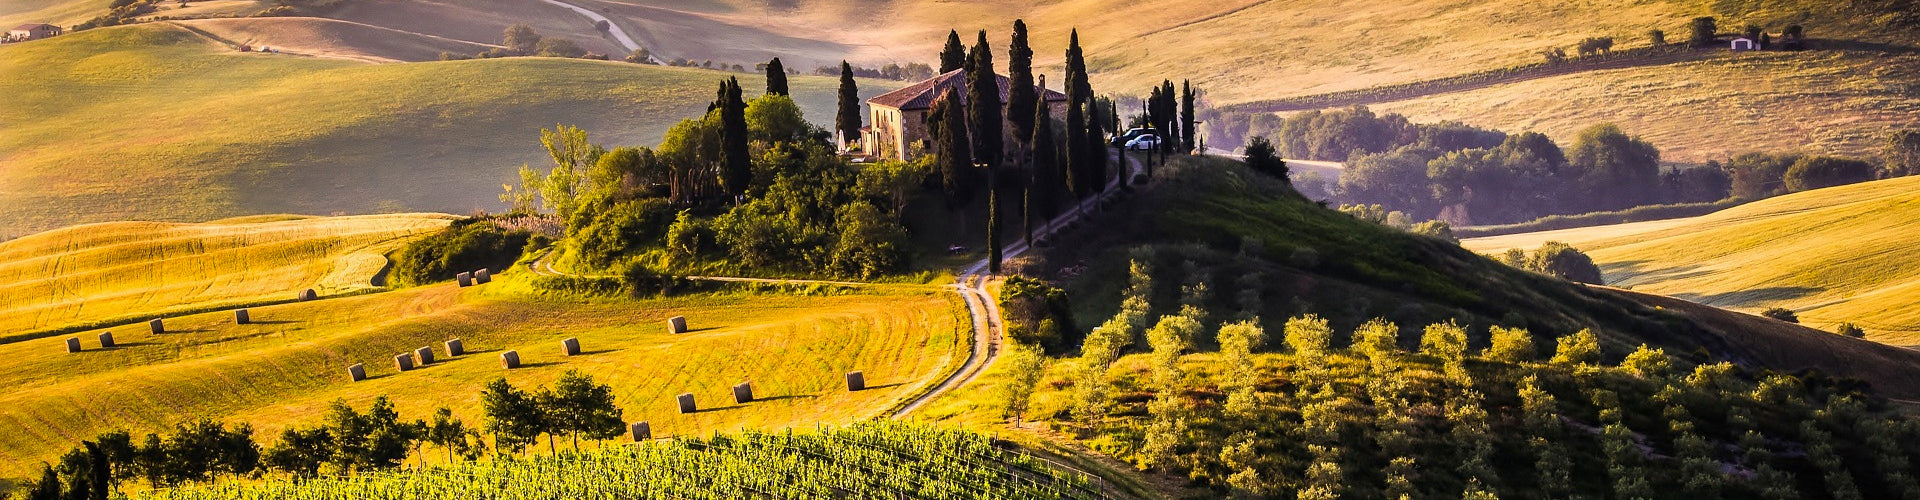 Tuscan Villa on hillside